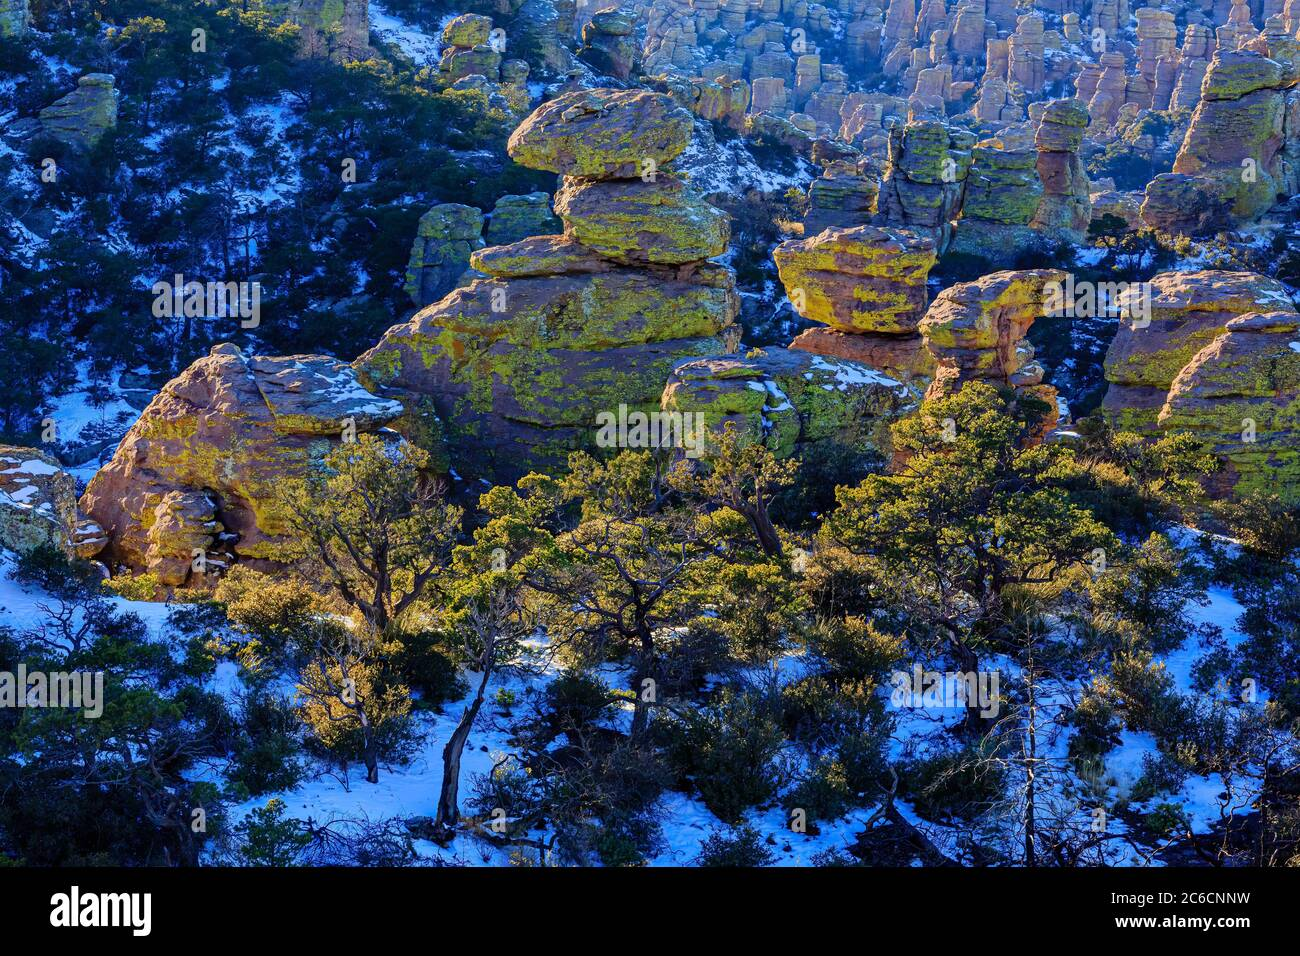 Chiricahua National Monument formations are spotlighted by the late Winter sun. Southeast Arizona. Stock Photo